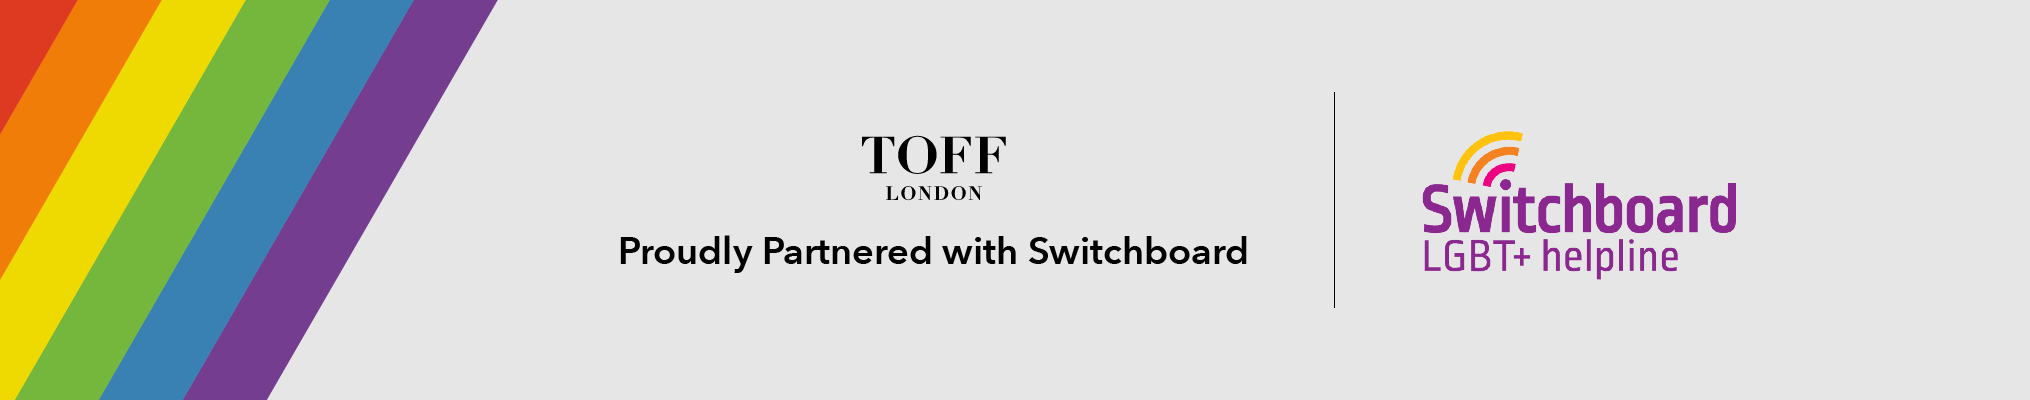 switchboard toff london banner